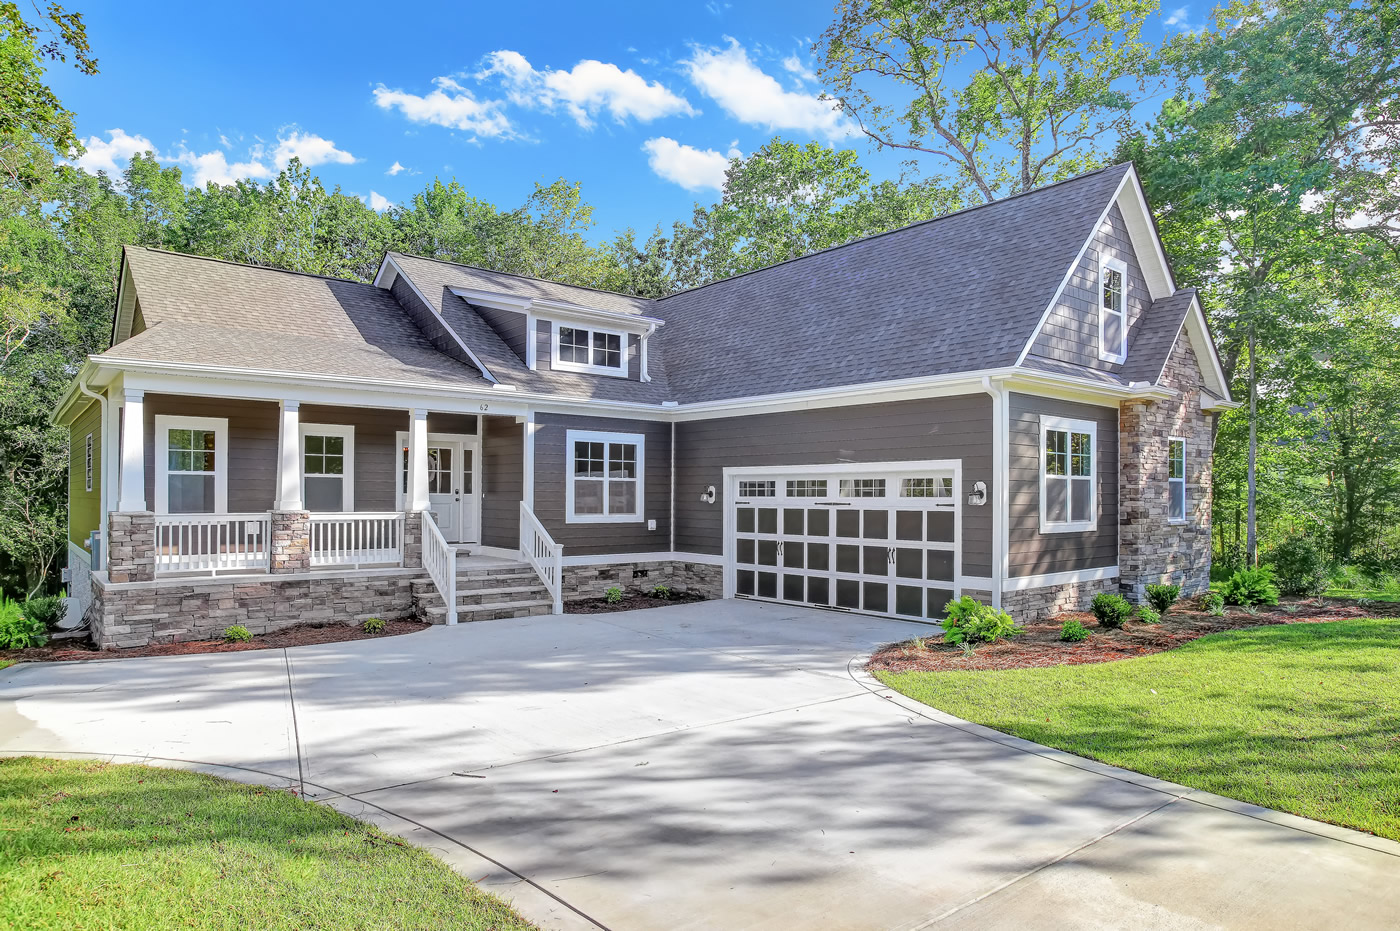 A home that received a HERS score by Southern Energy Management.